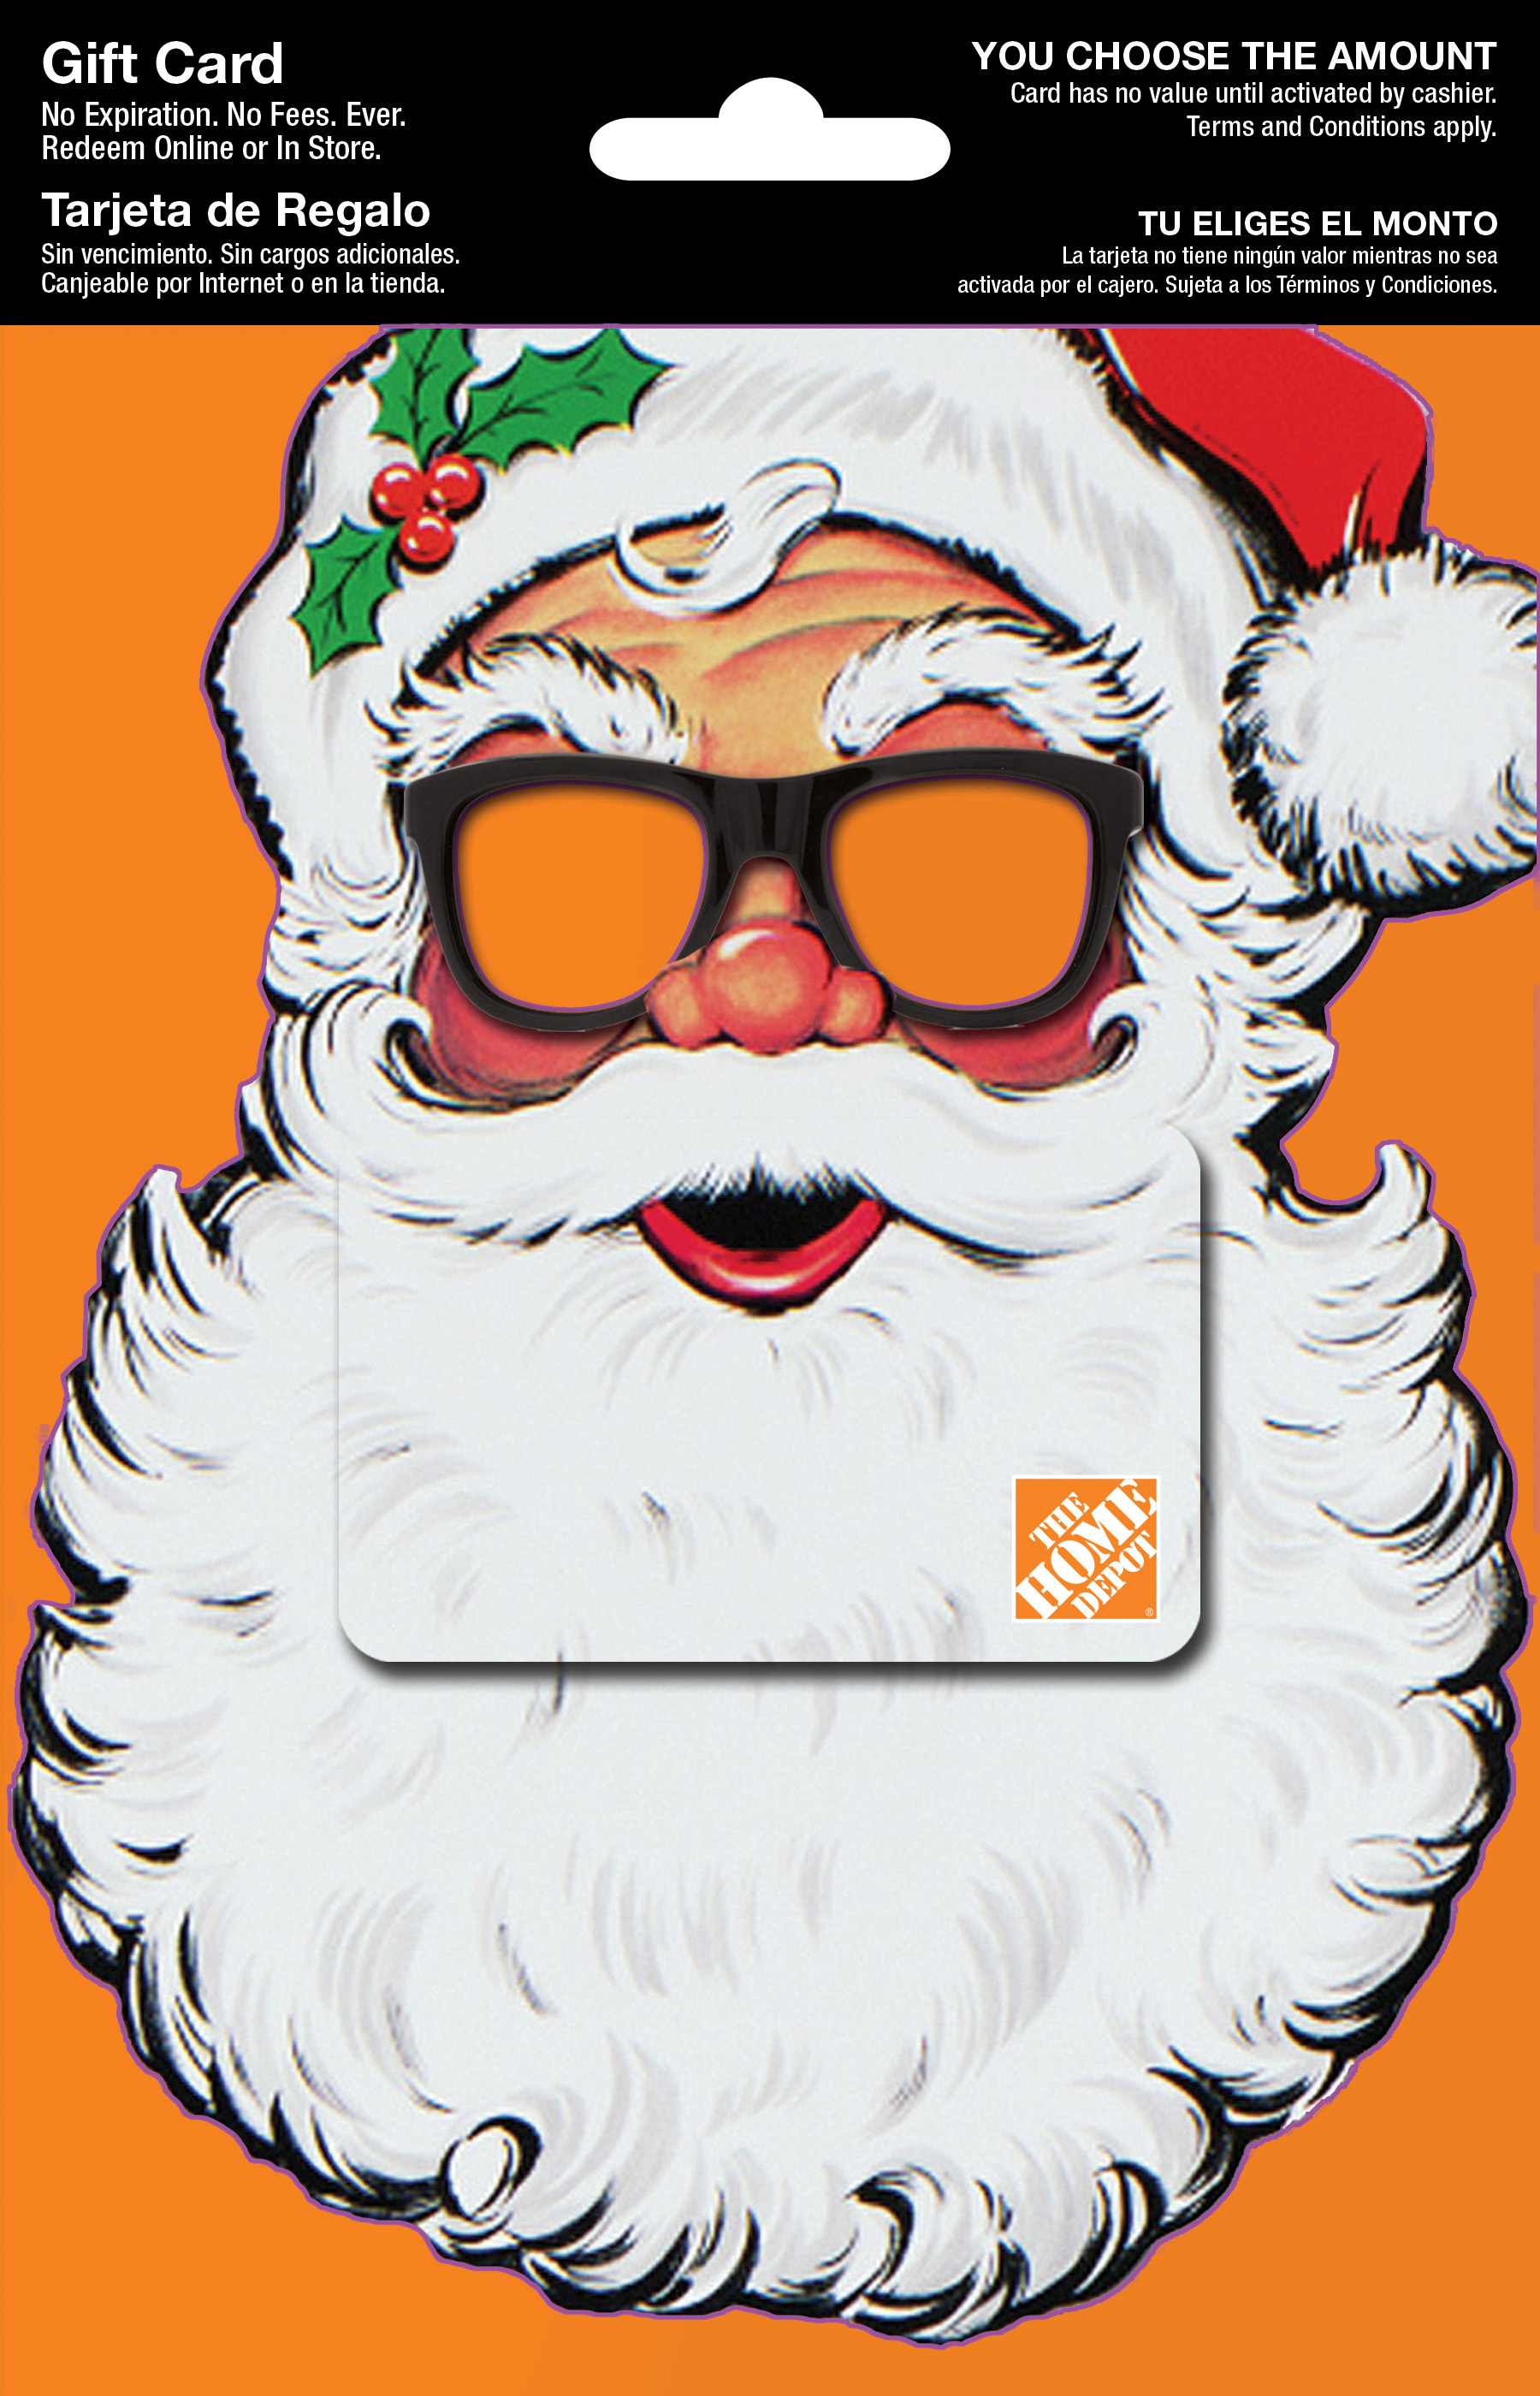 THD GIFT CARDS